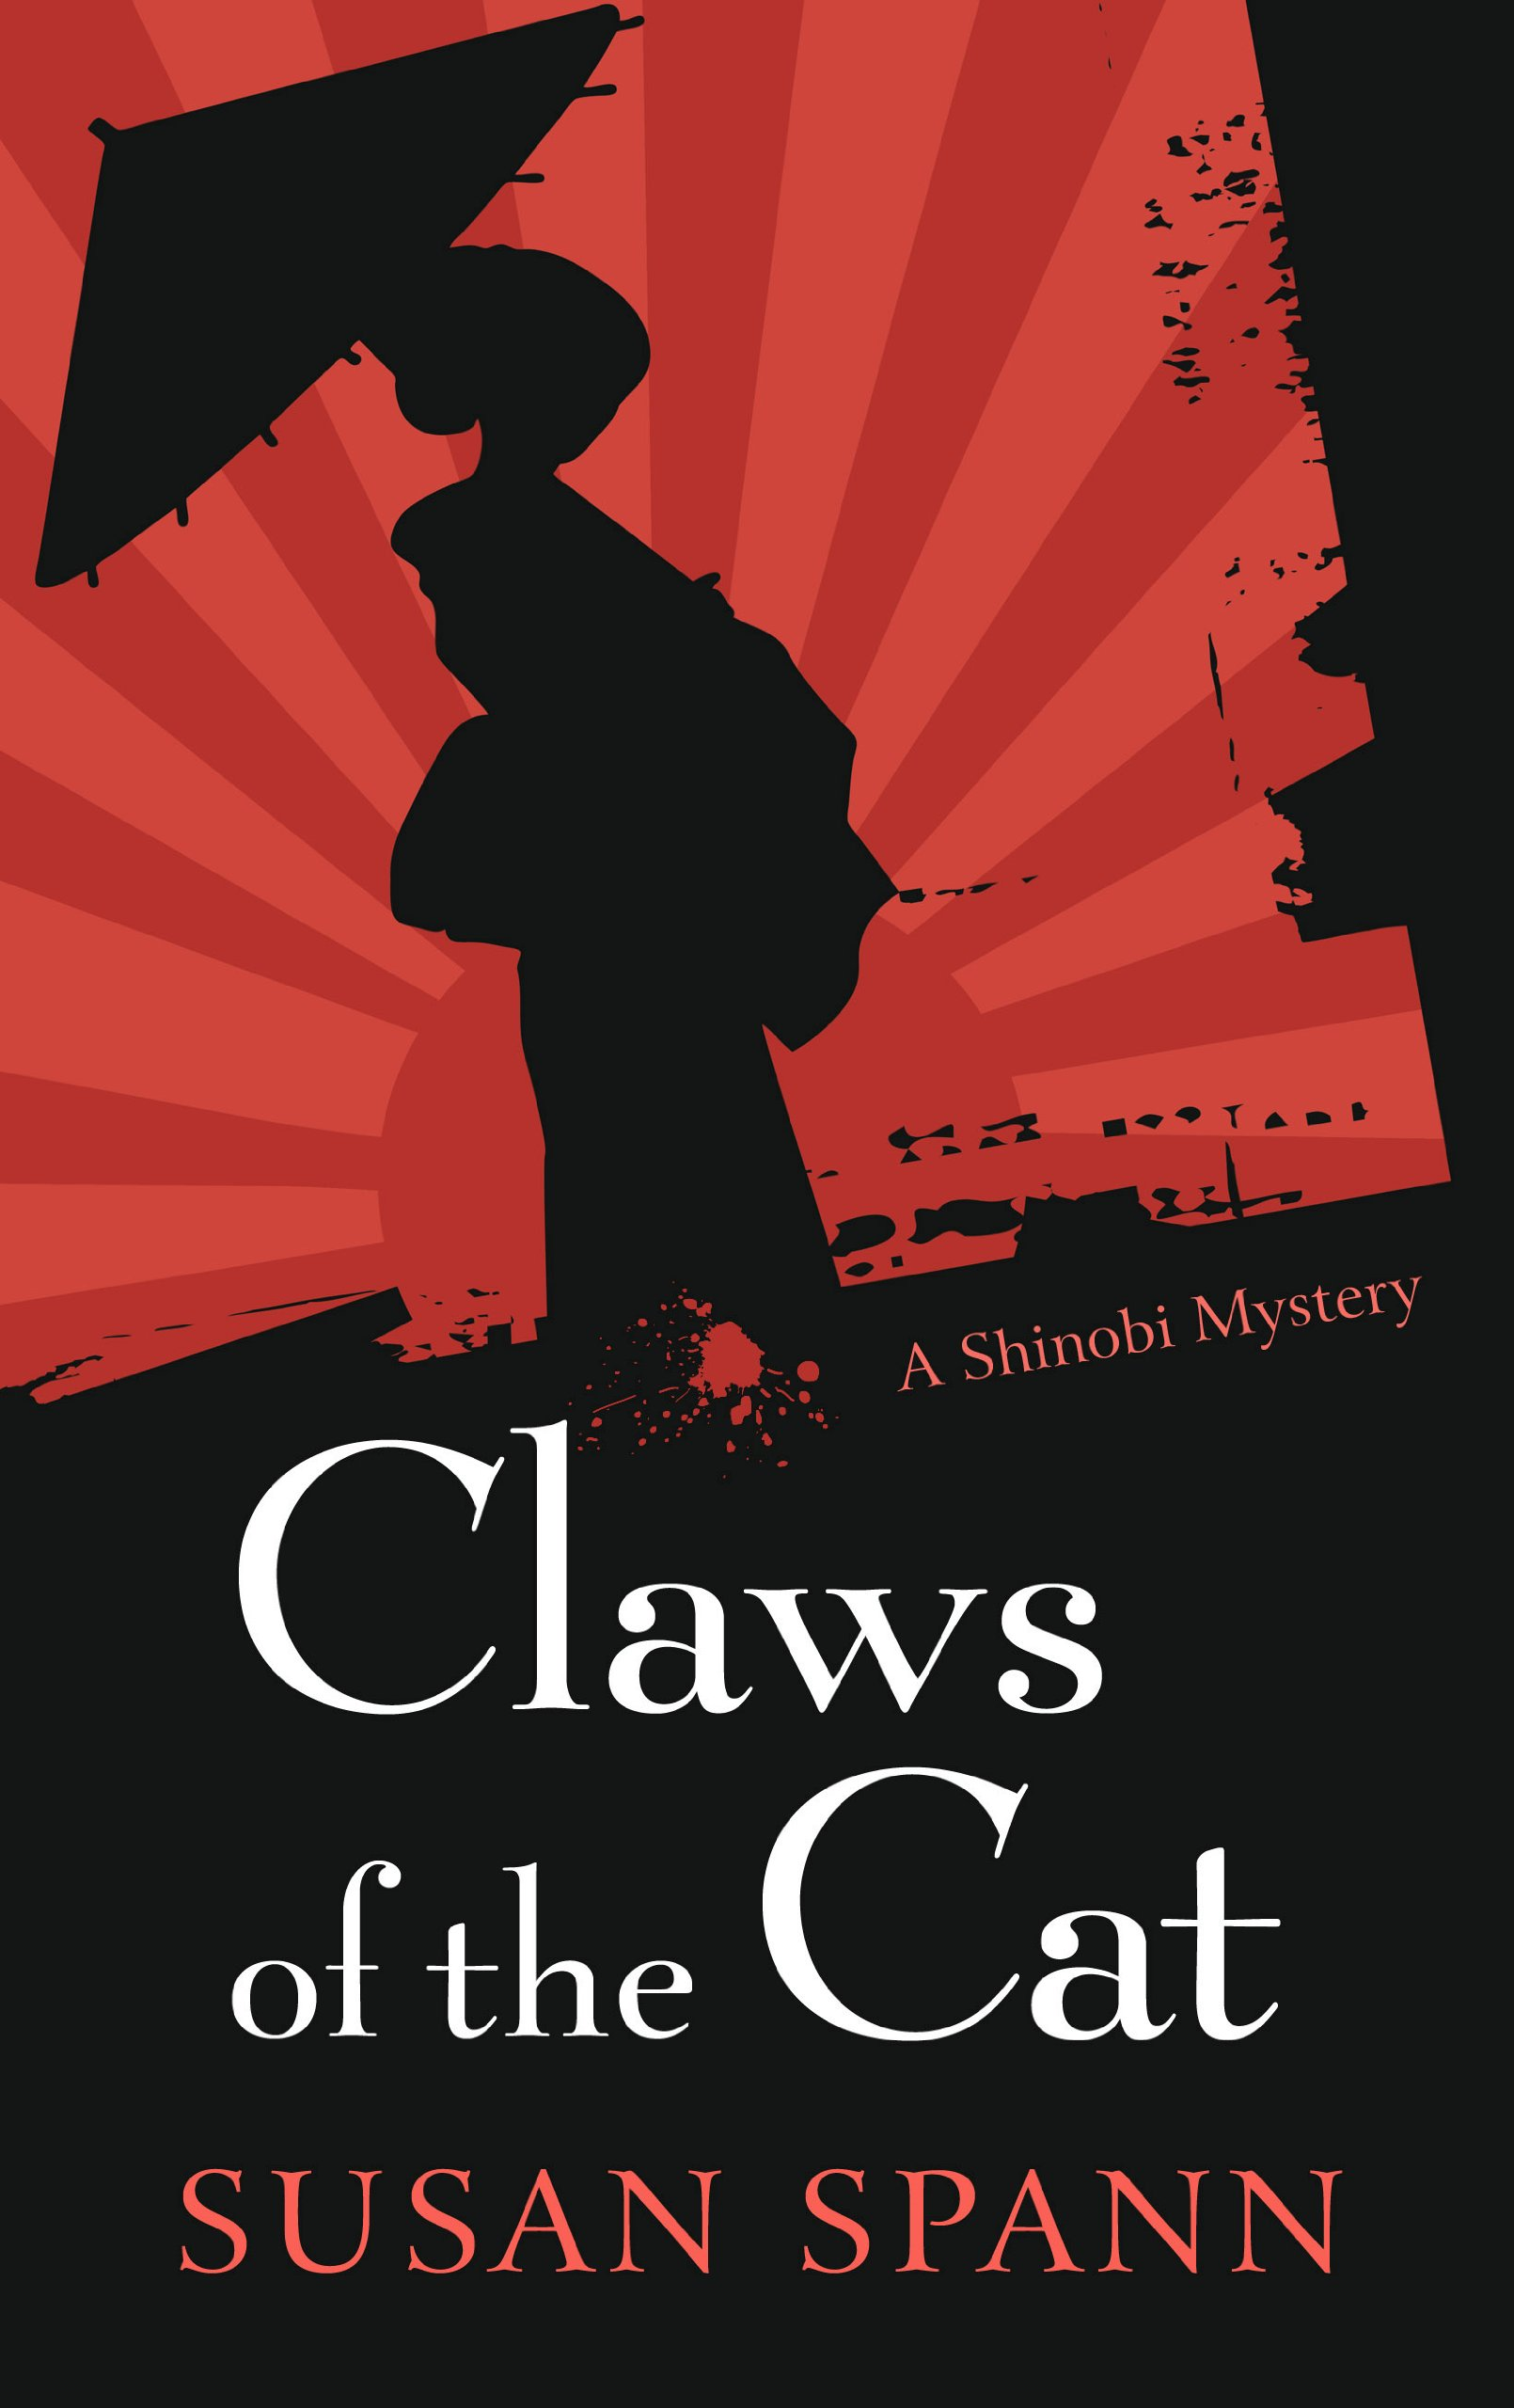 Claws of the Cat Thorndike Press Large Print Reviewers ...